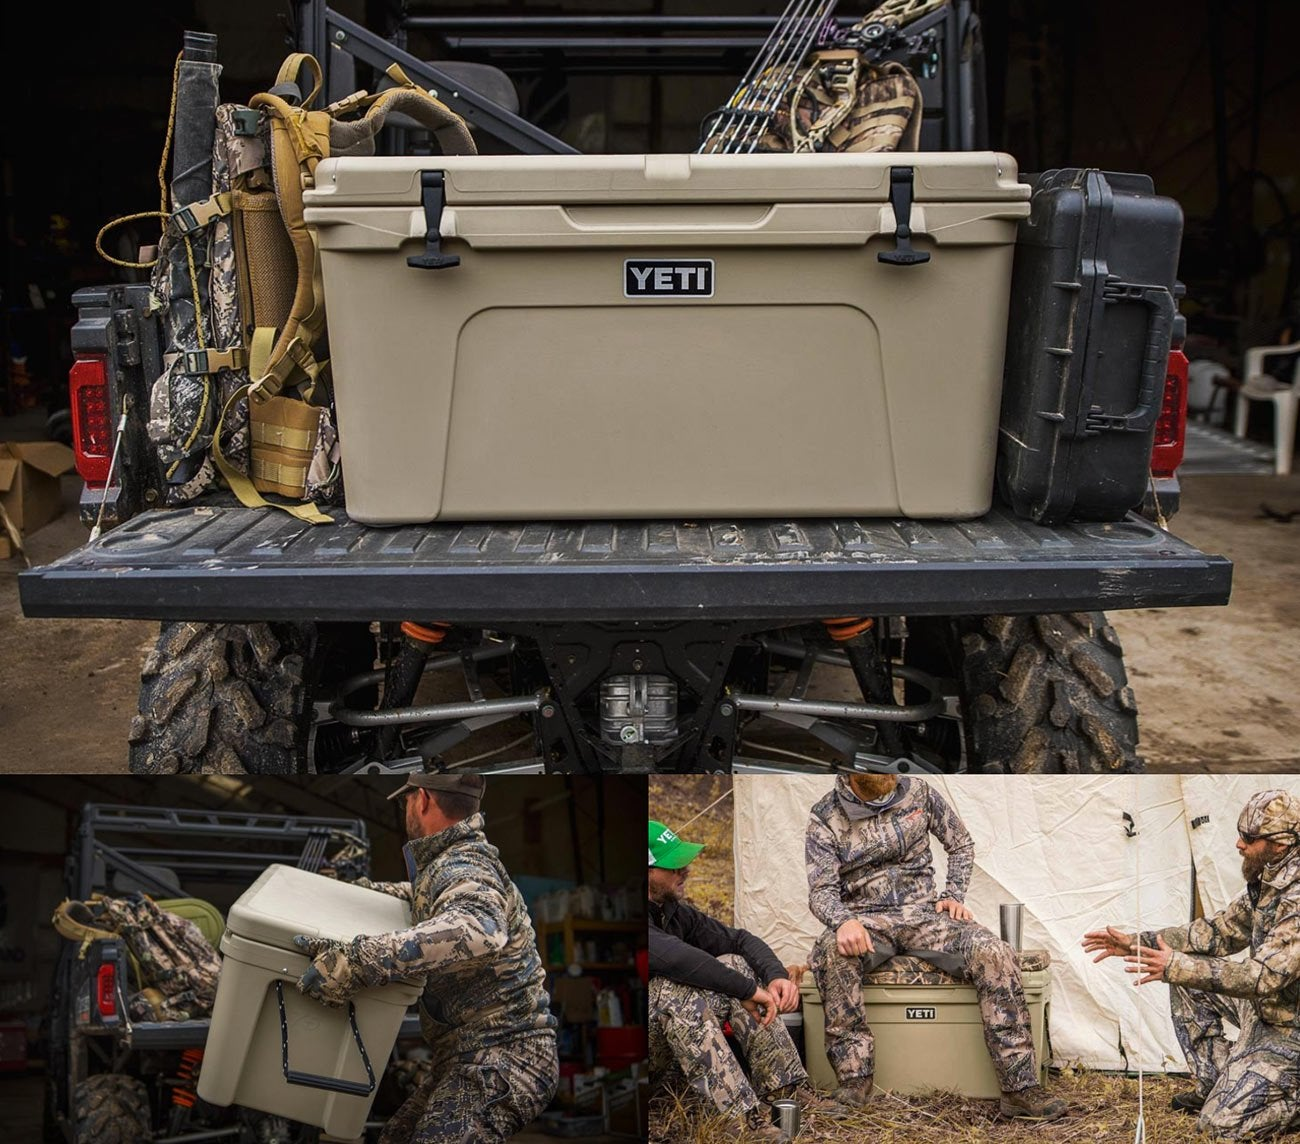 Should Yeti Worry About This New Cooler Competitor?